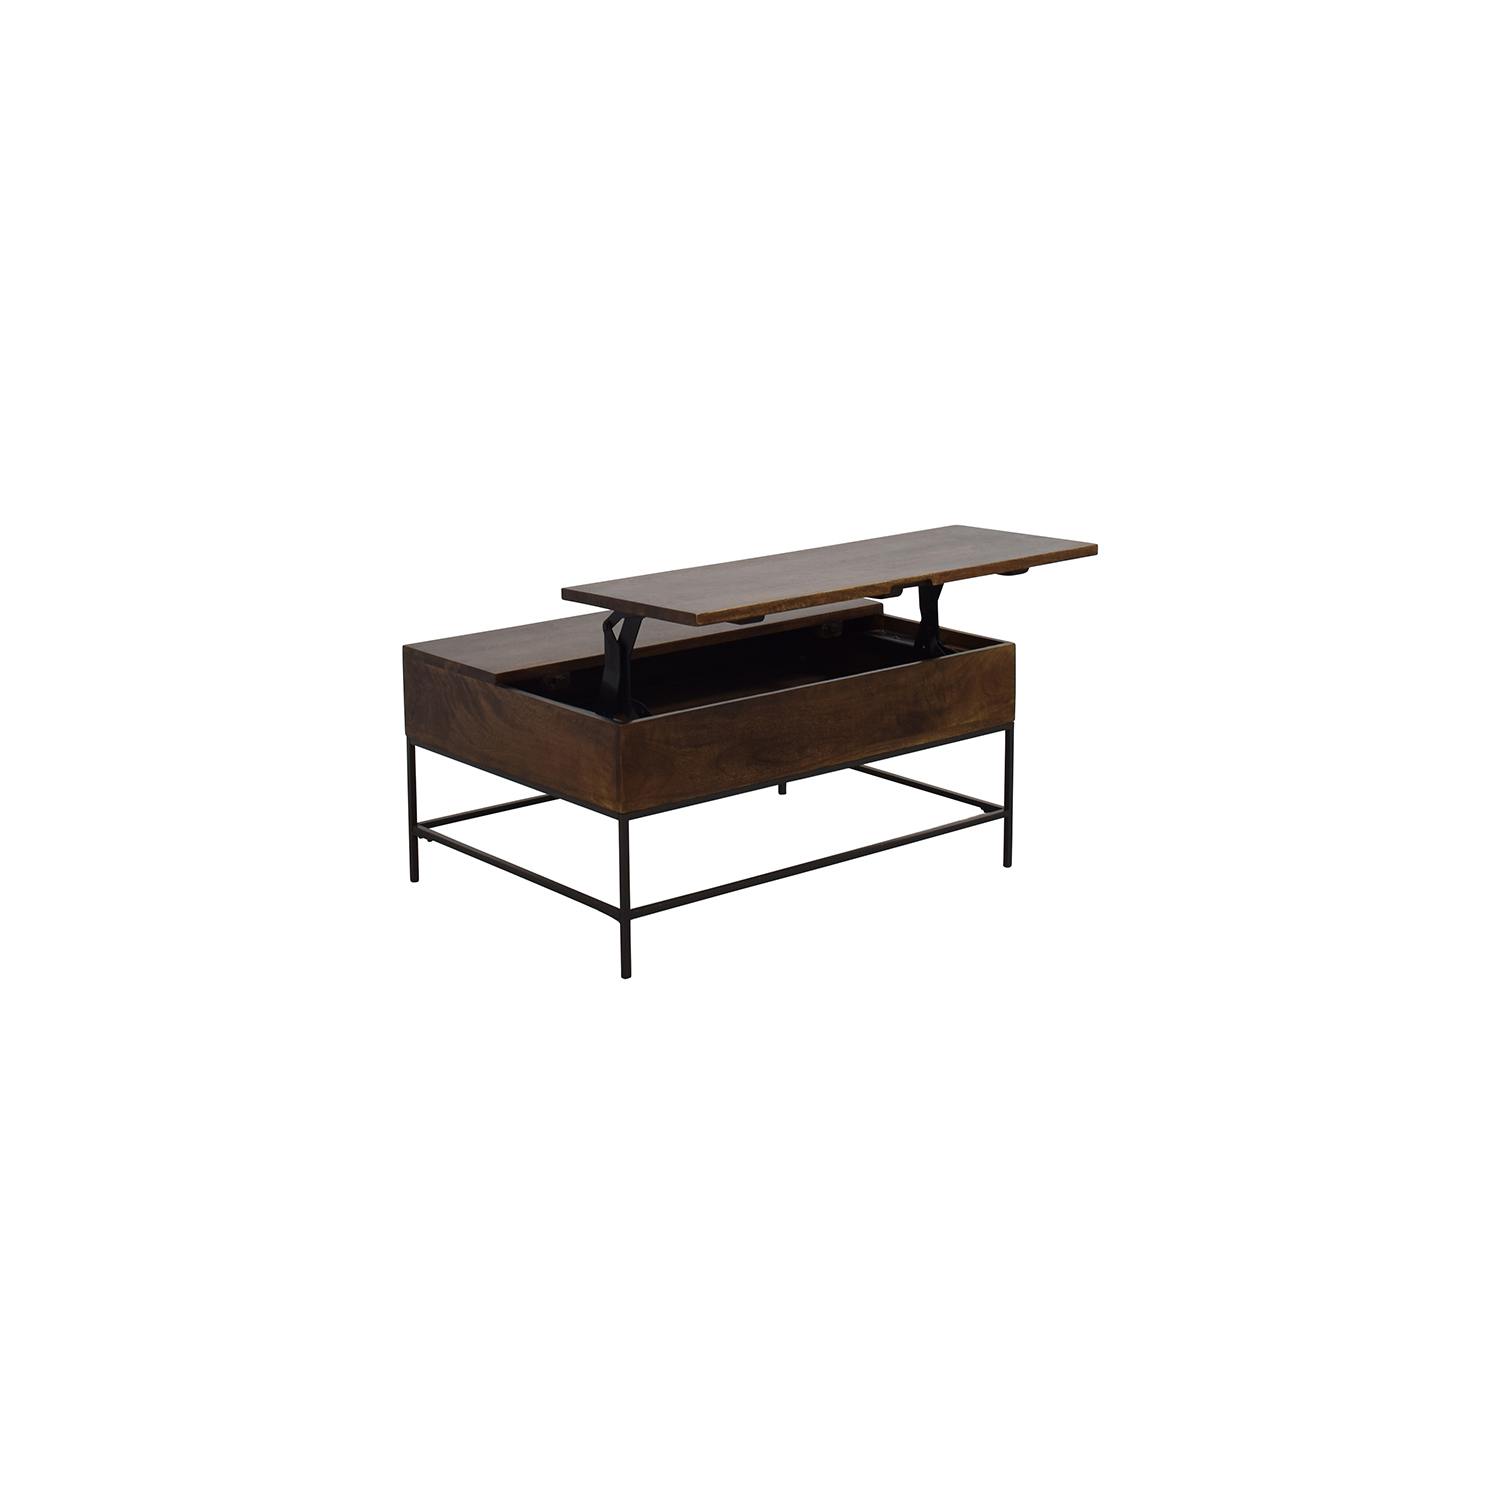 used industrial furniture. West Elm Industrial Storage Coffee Table Tables Used Furniture B